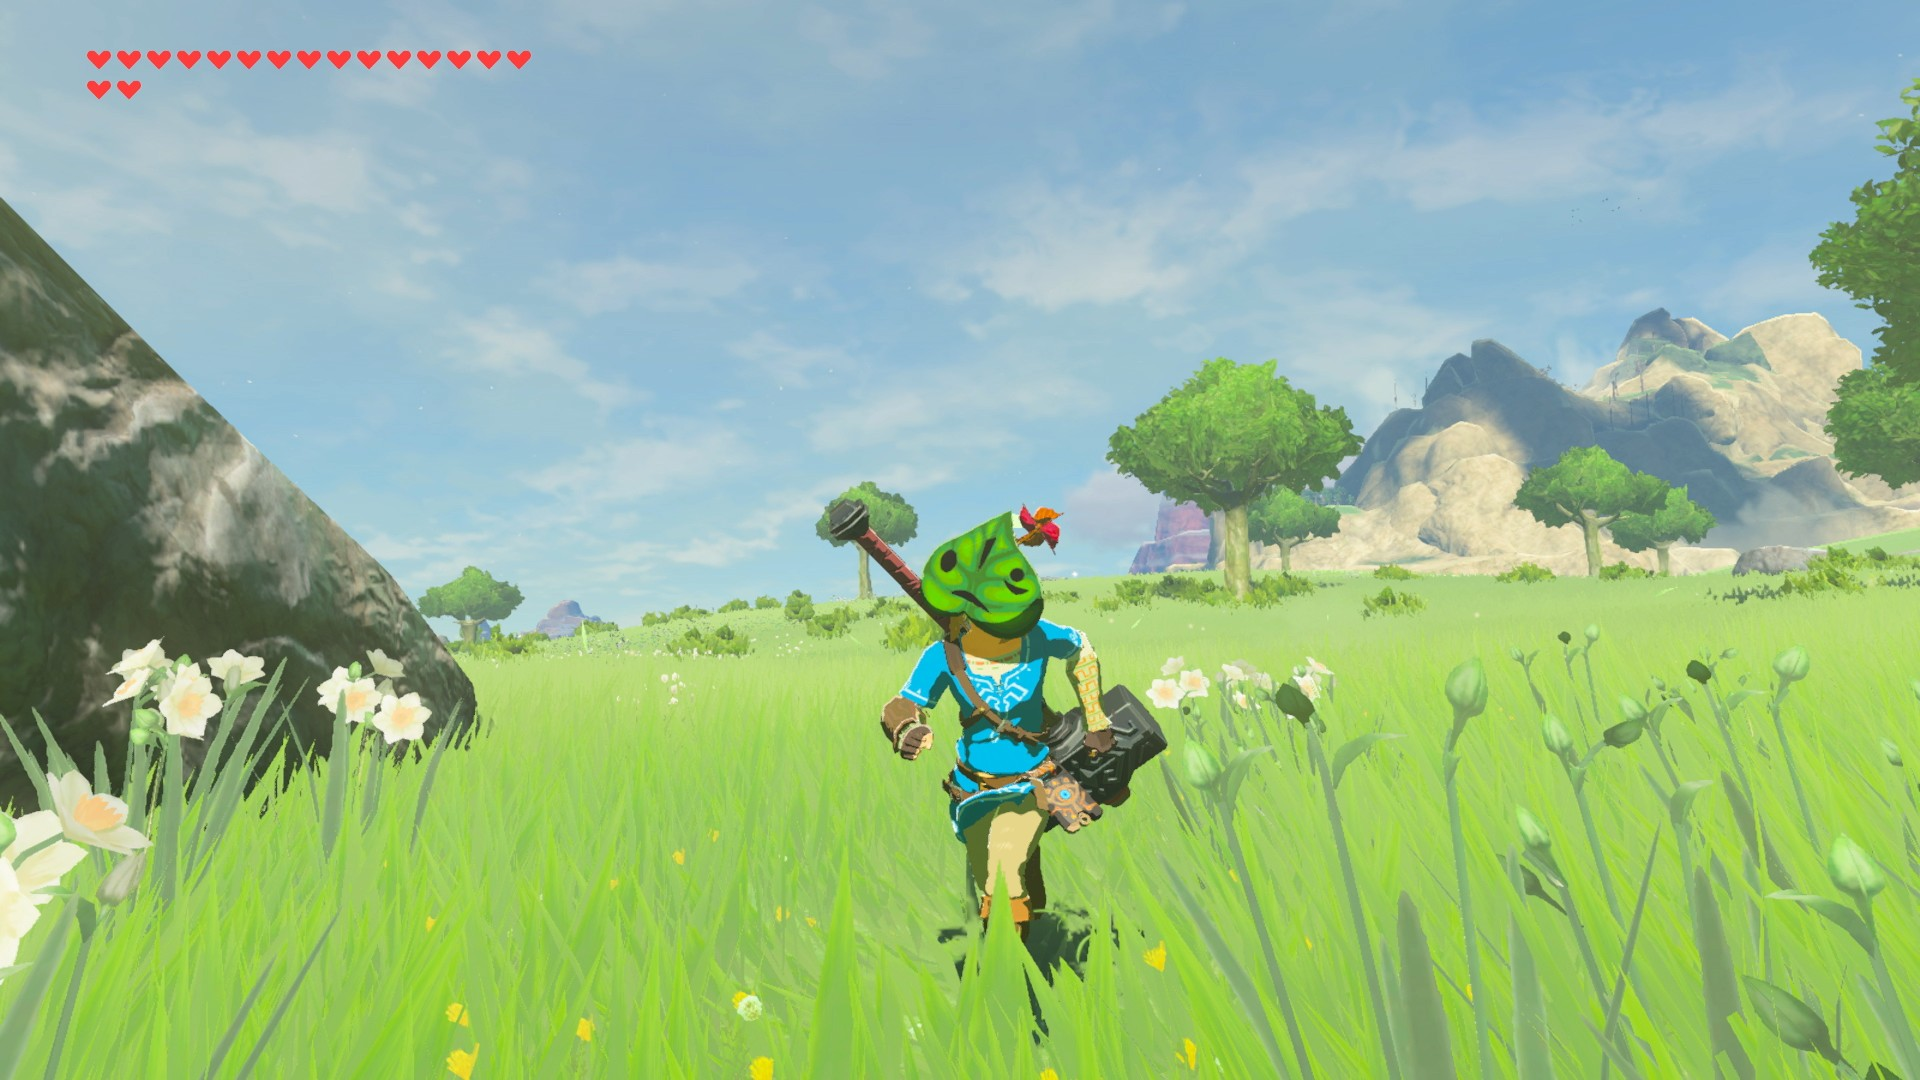 Korok Mask / The korok mask is found in a chest in the lost woods.